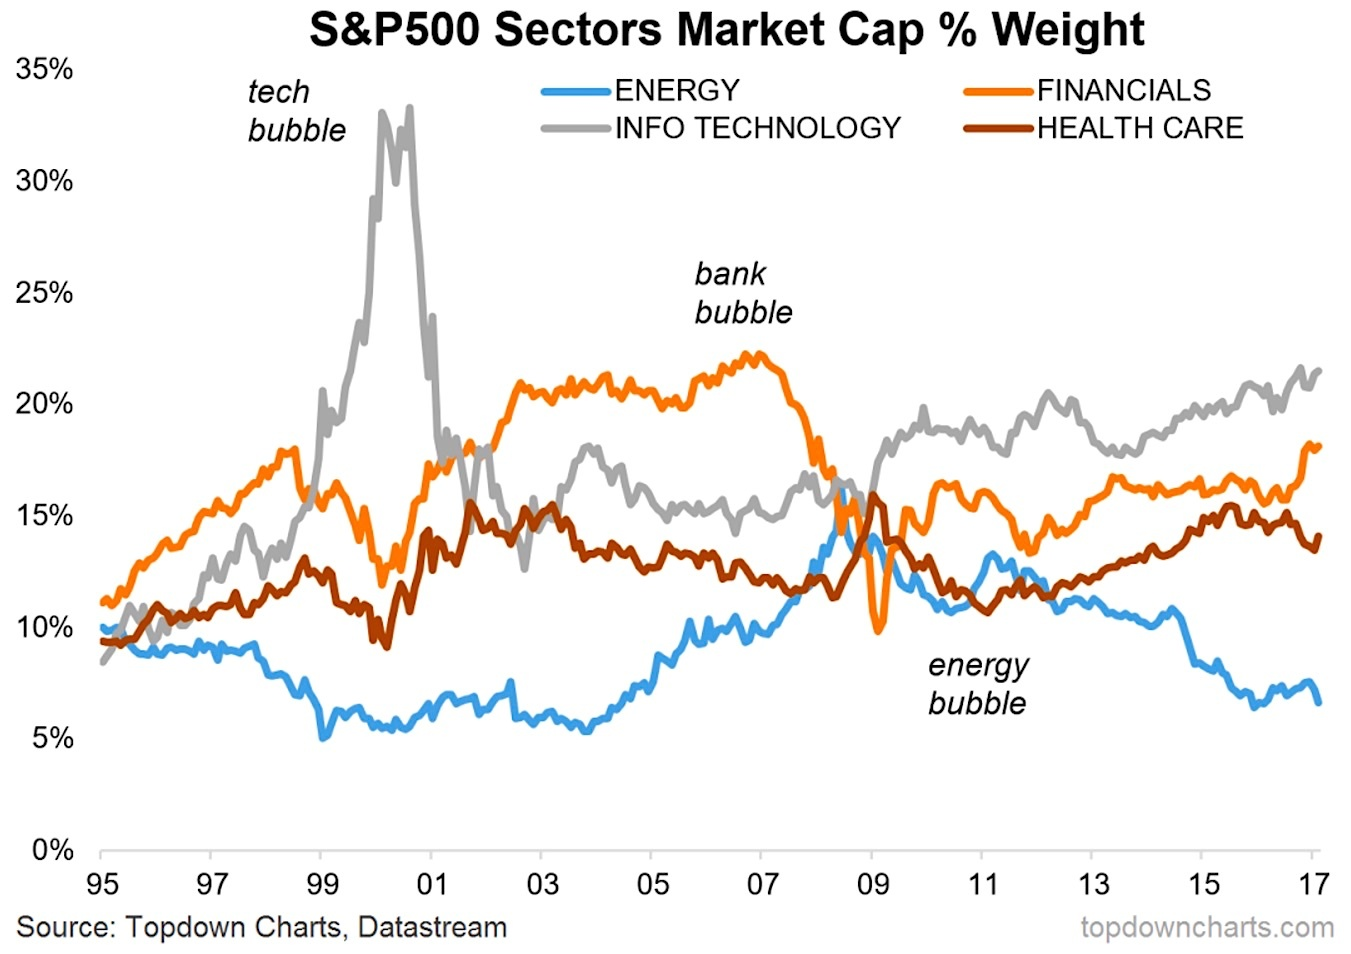 sp-500-sector-performance-by-weighting-chart-years-1995-to-2017